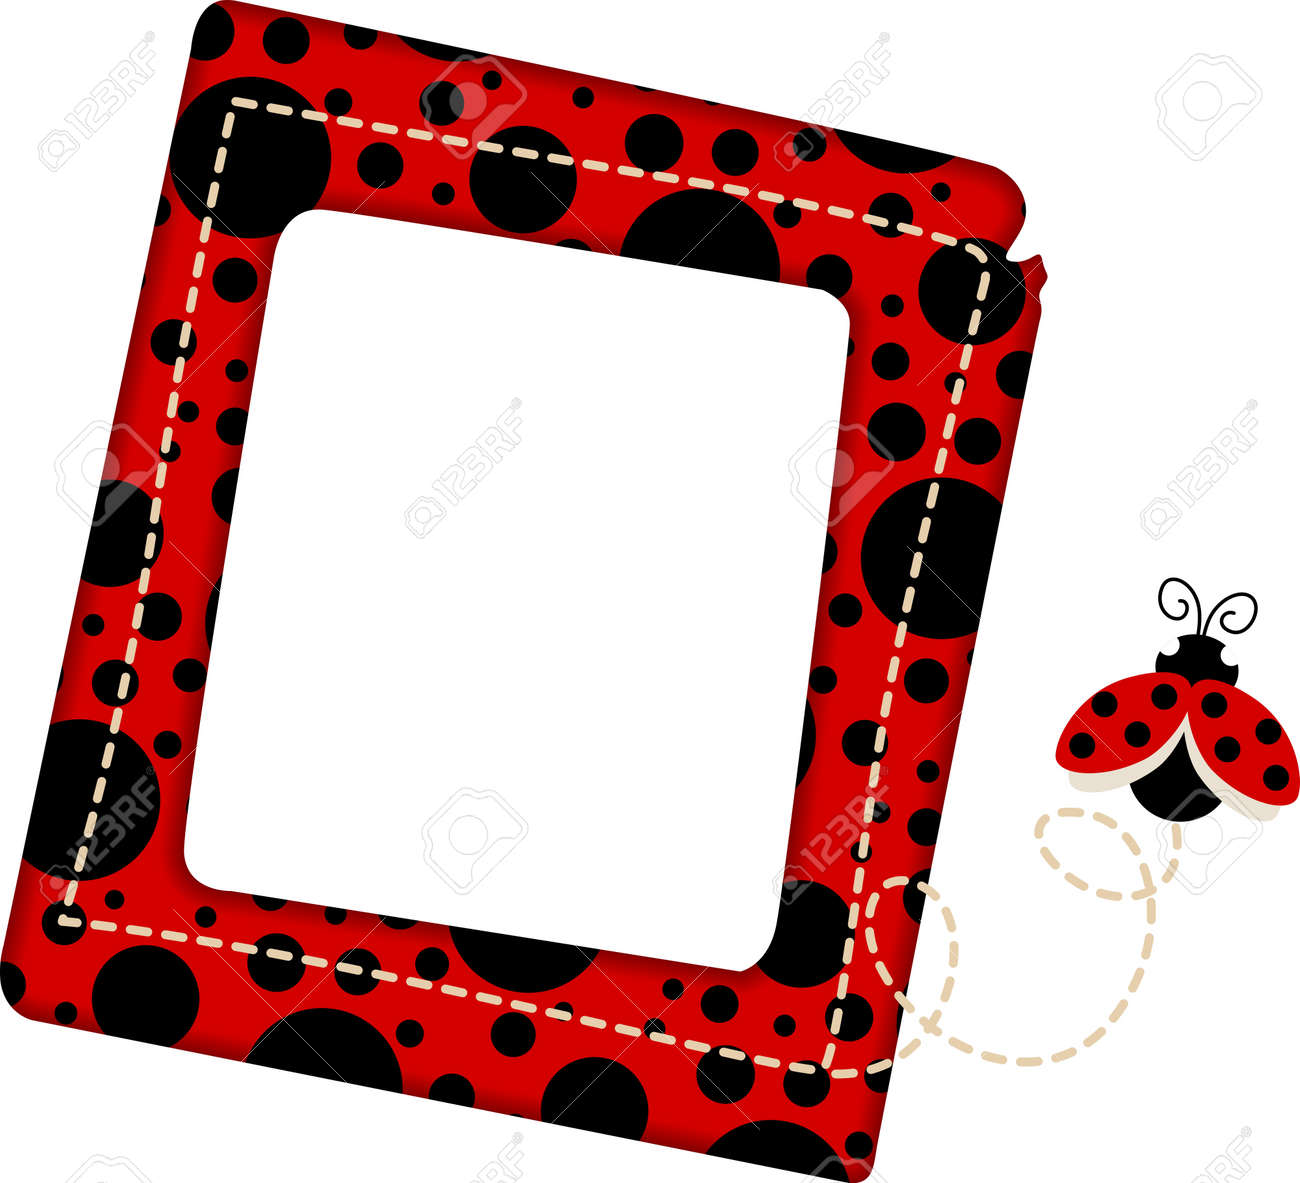 Ladybug Frame Royalty Free Cliparts, Vectors, And Stock Illustration ...